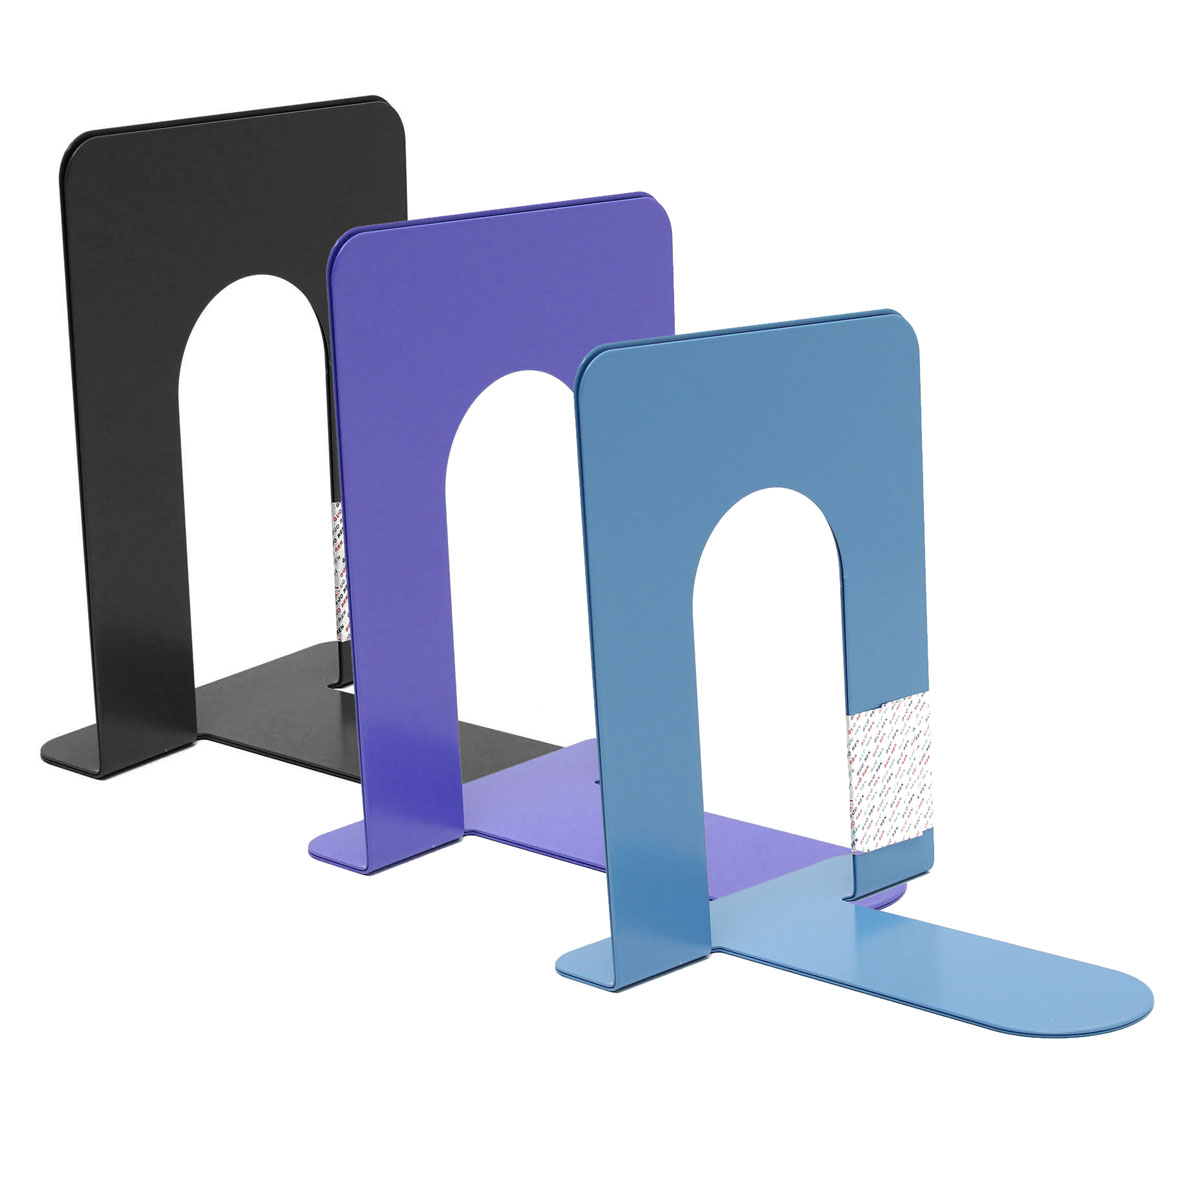 Wholesale 2 X Cheap Durable Heavy Duty Metal Book End Shelf Bookend Holder Office School Supplies Stationery Student Good Helper In Bookends From